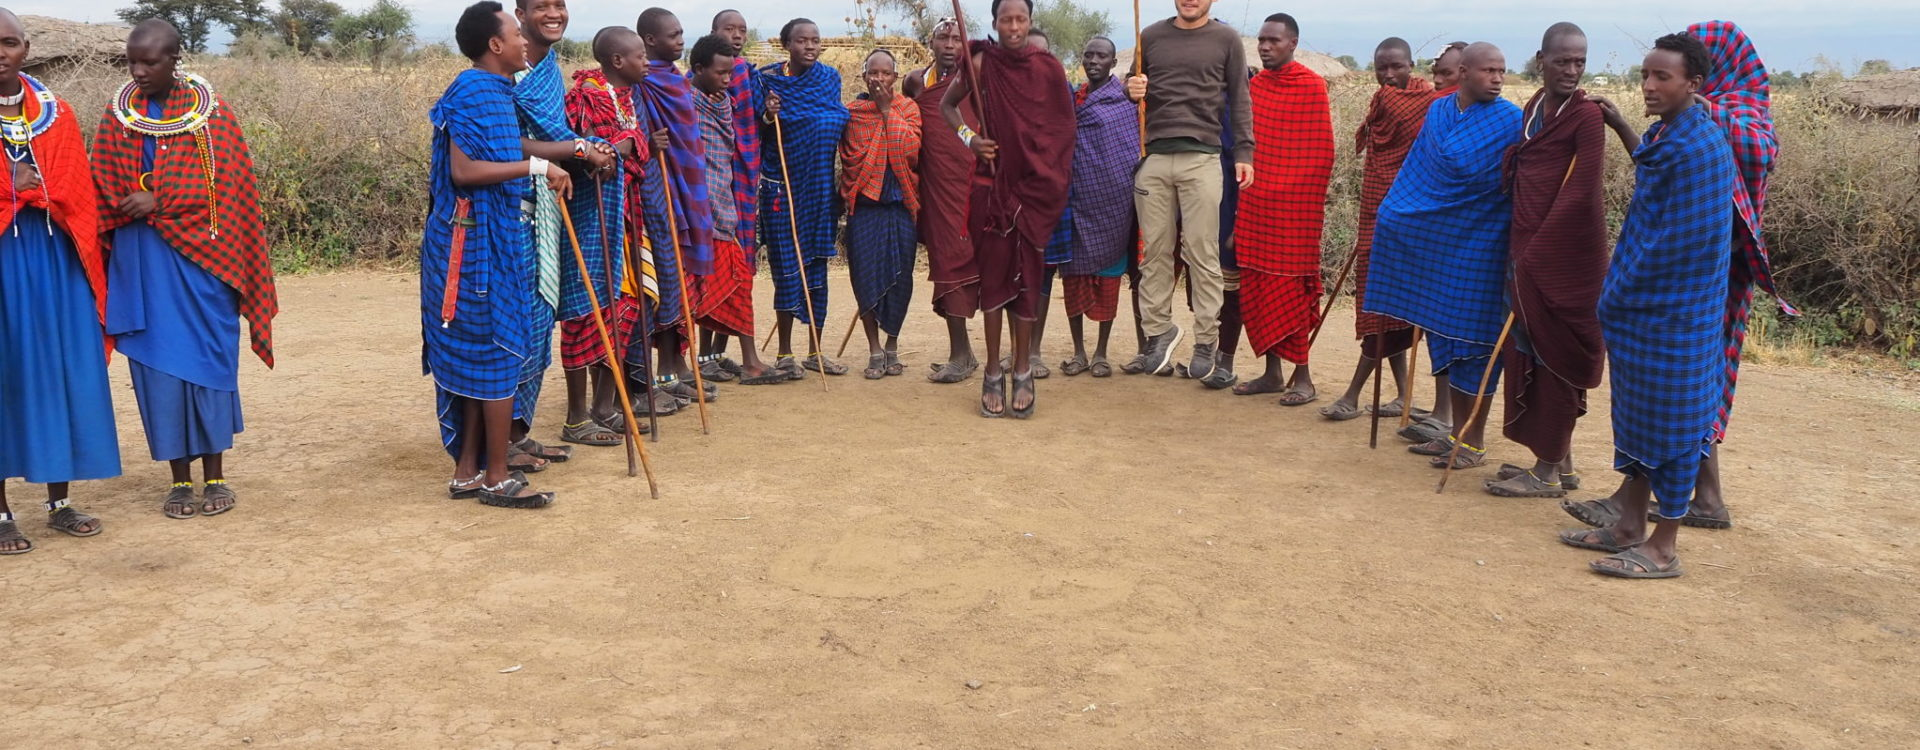 N Wong Maasai Village visit and jumping